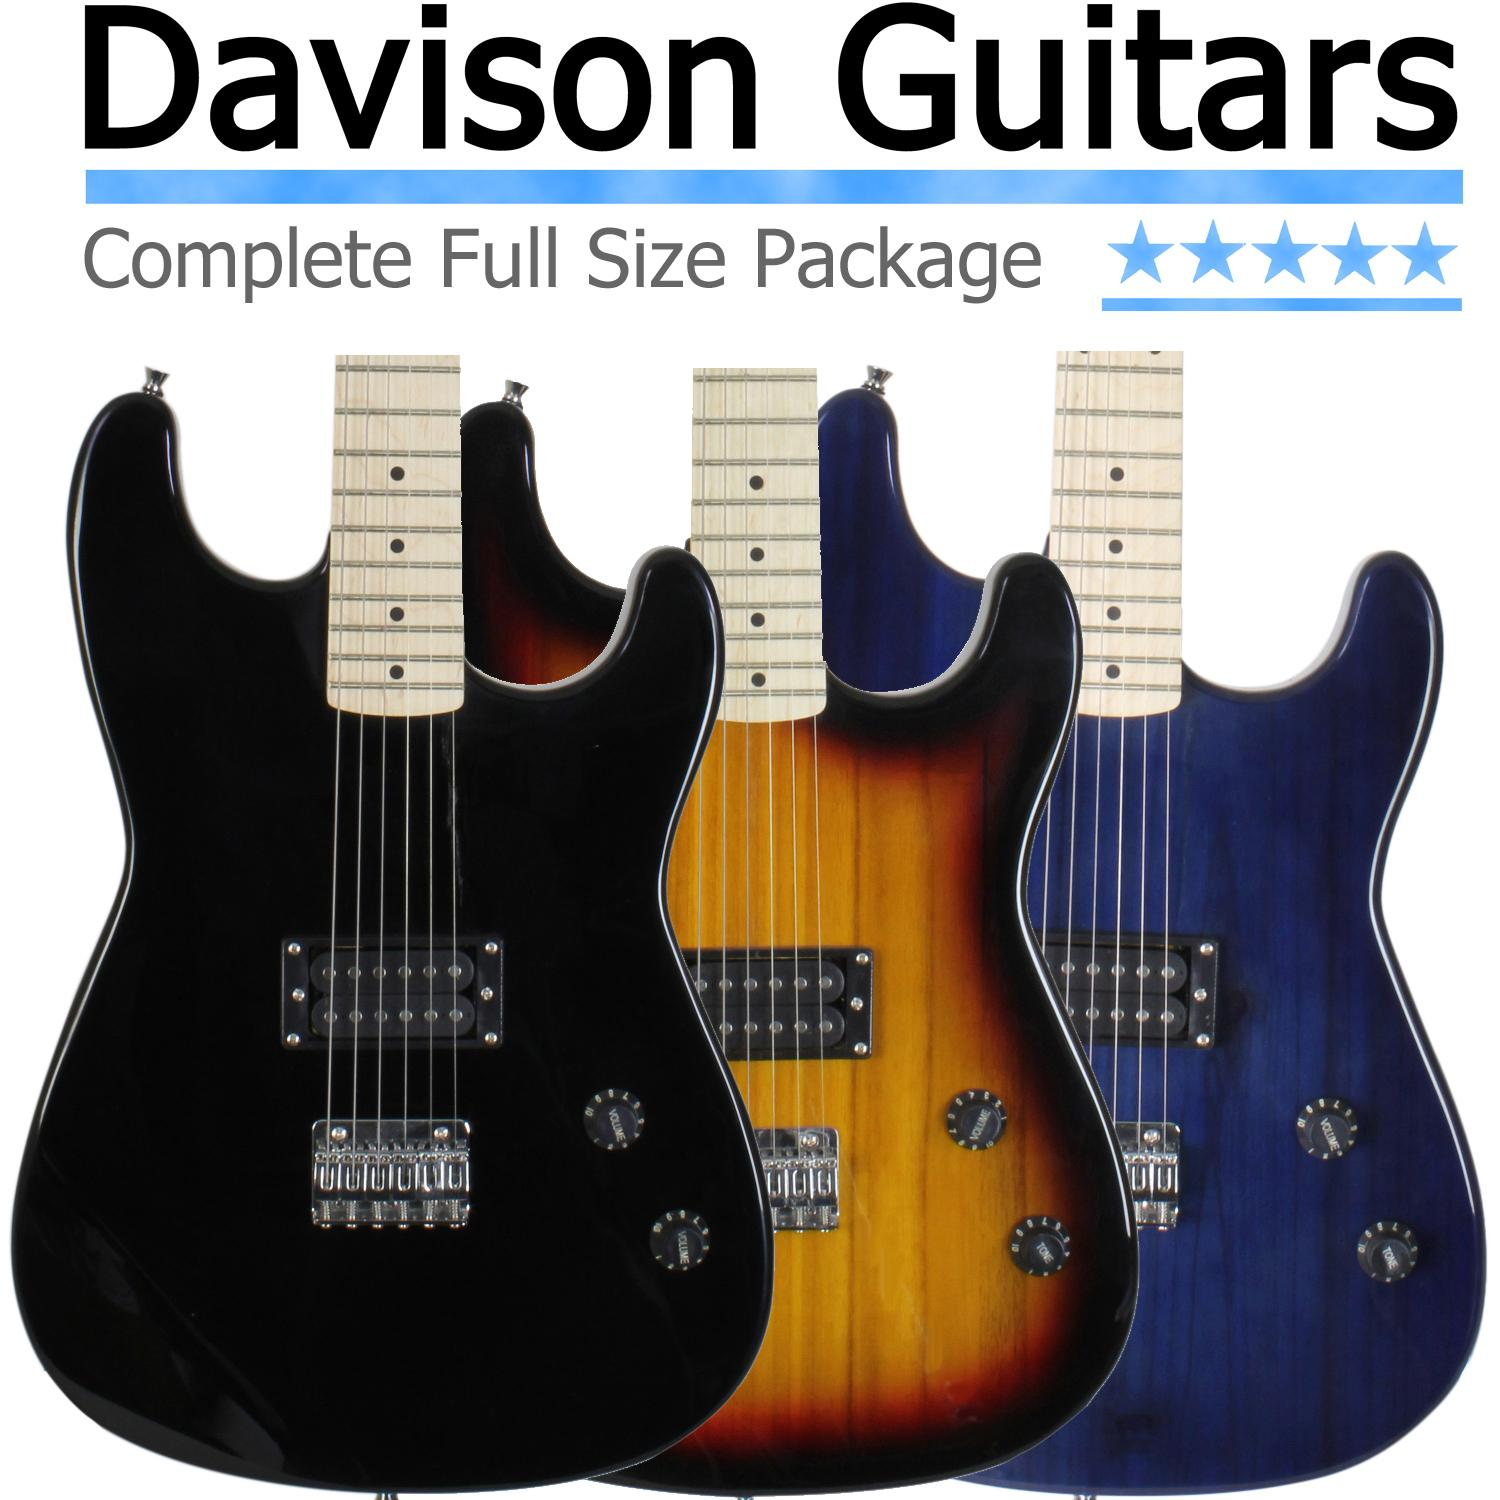 davison guitars full size black electric guitar with amp case and accessories pack. Black Bedroom Furniture Sets. Home Design Ideas